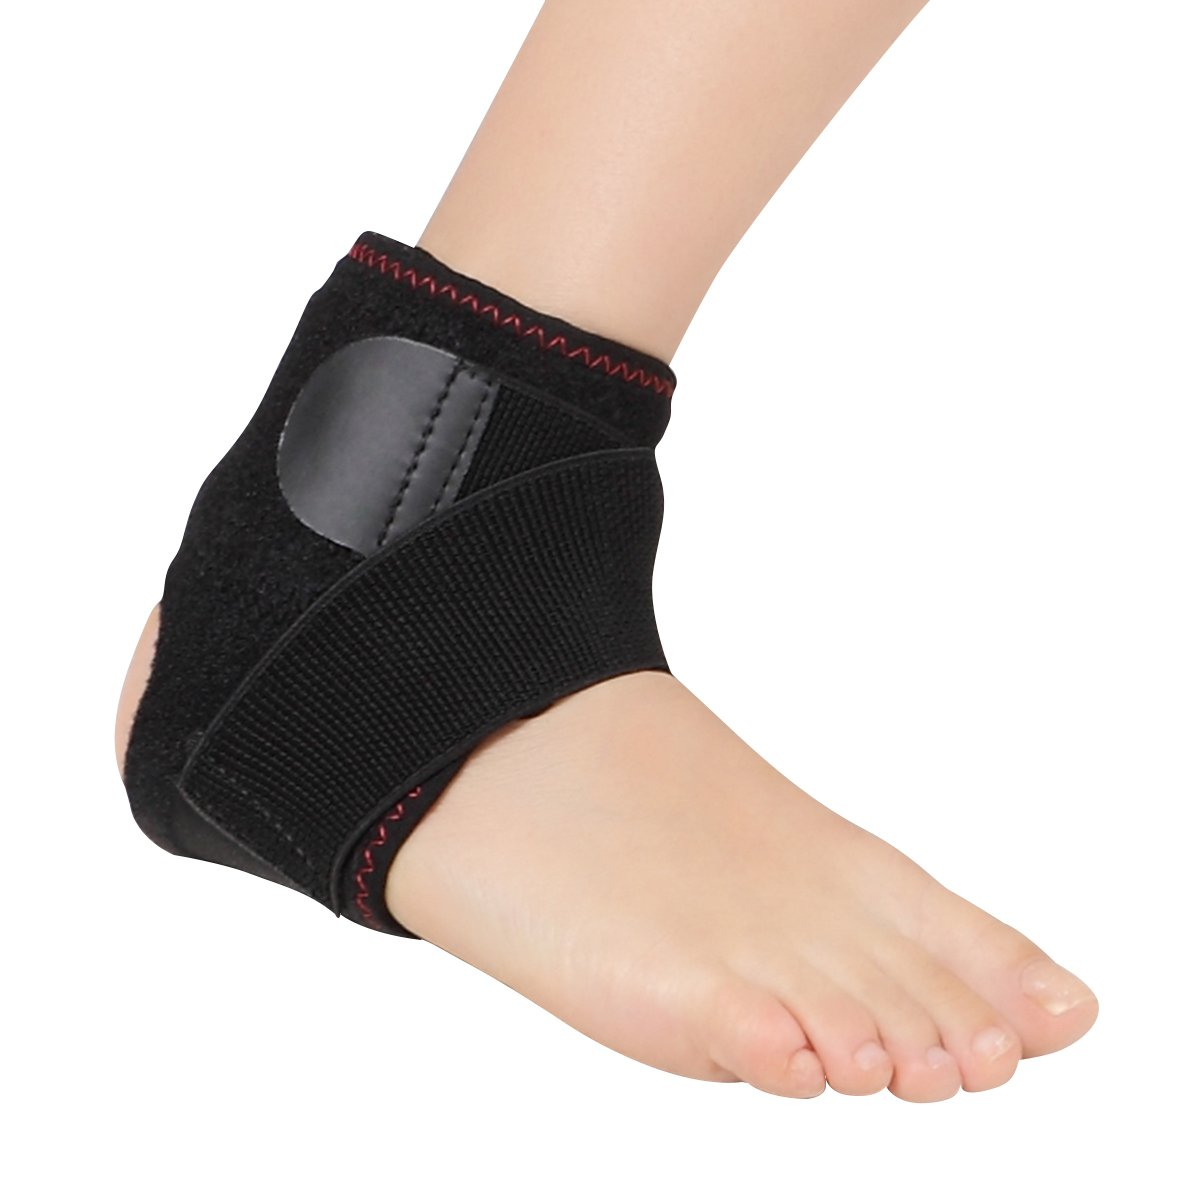 Techlove Heated Ankle Brace Heat Therapy Heel Wrap by with Moxa Bag for Men and Women Pain Relief for Sprain, Arthritis and Achilles Tendon (Black)